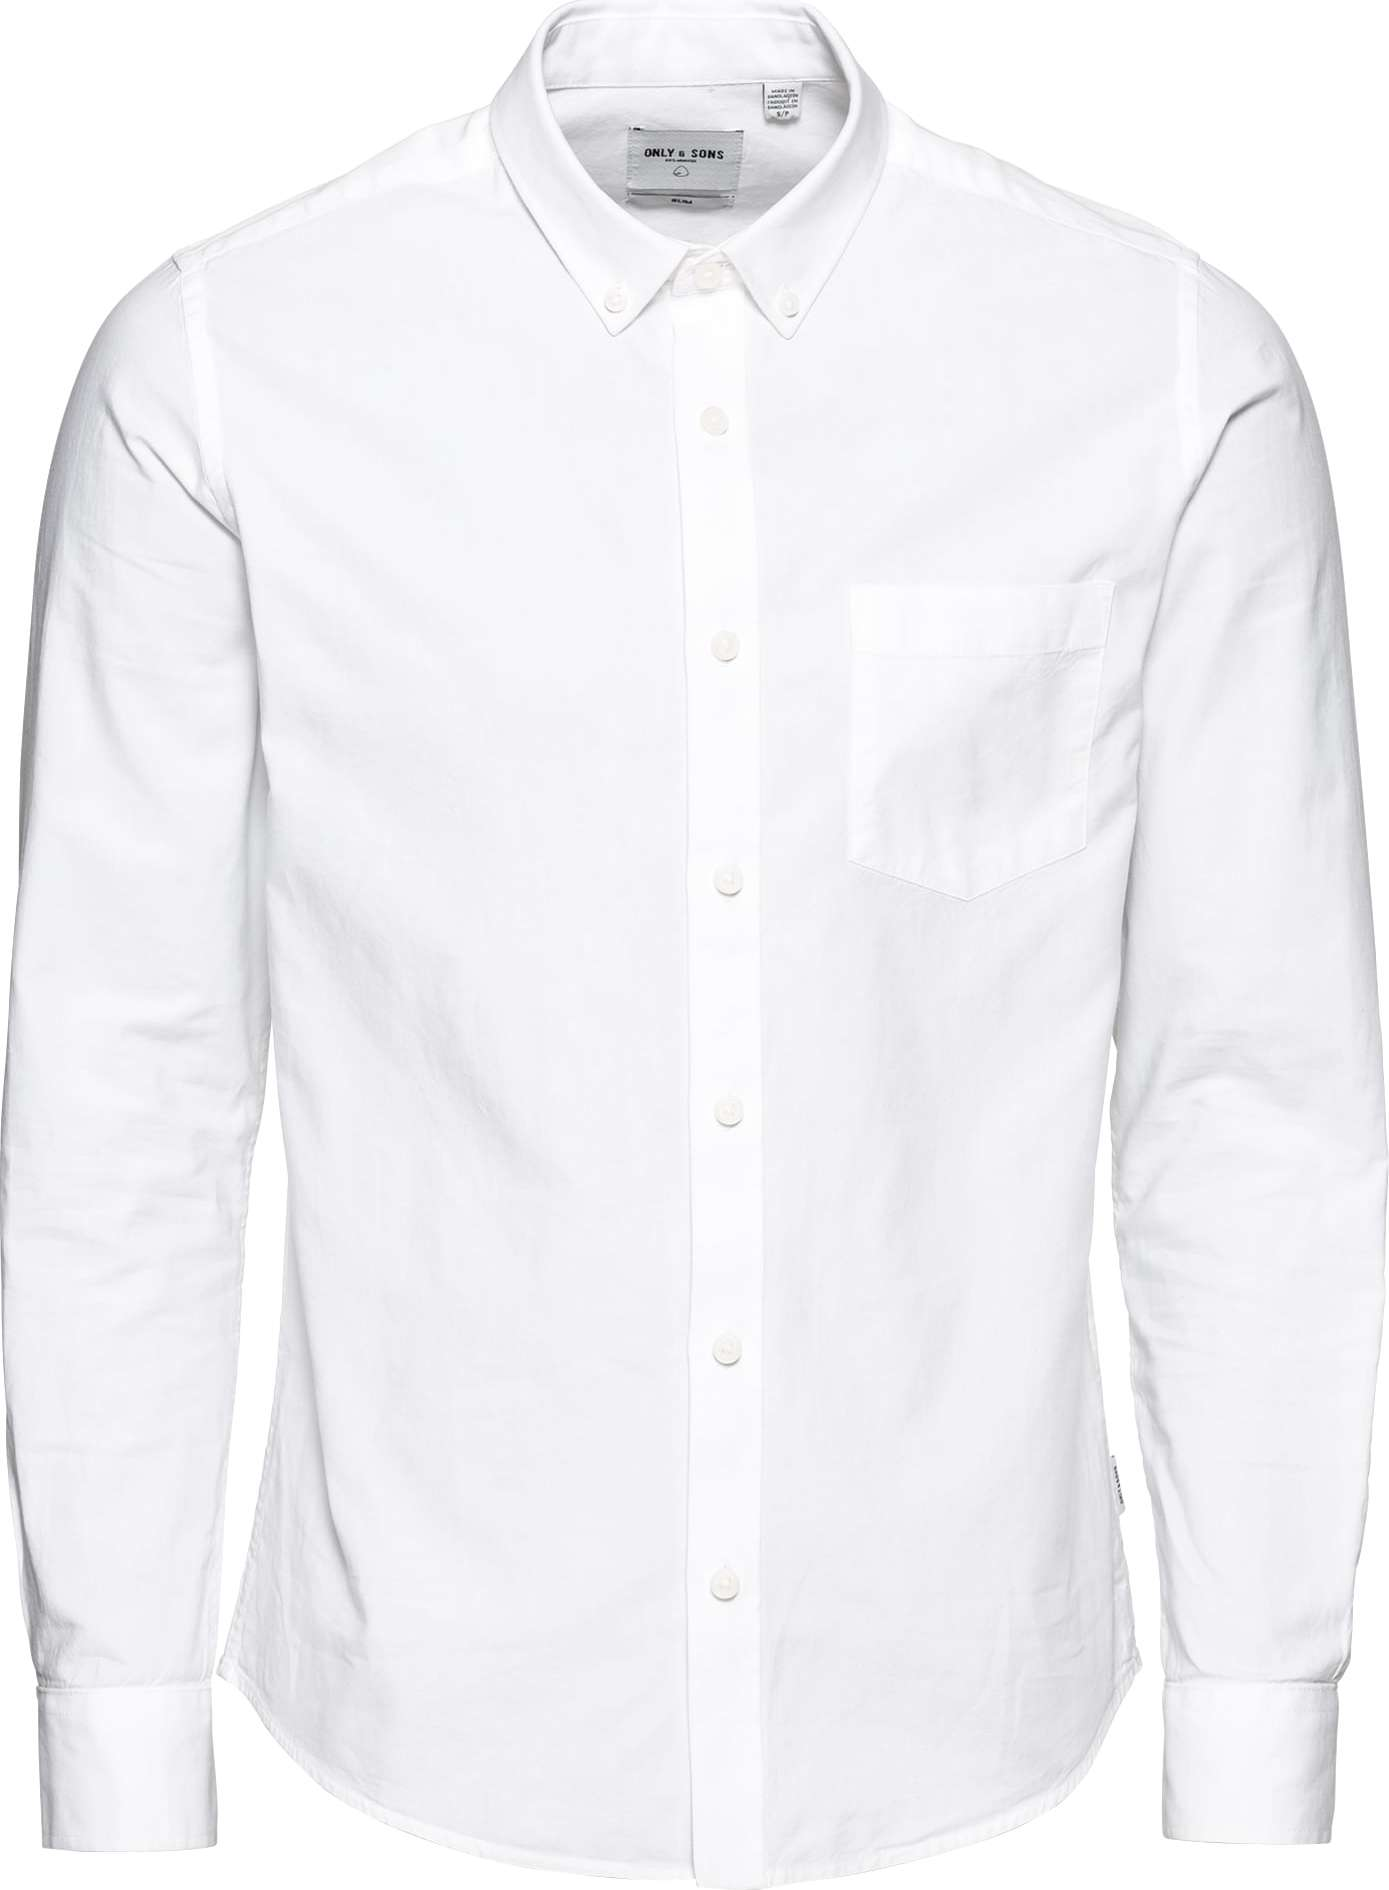 Only Sons Košile ALVARO LS OXFORD SHIRT NOOS bílá ONLY & SONS